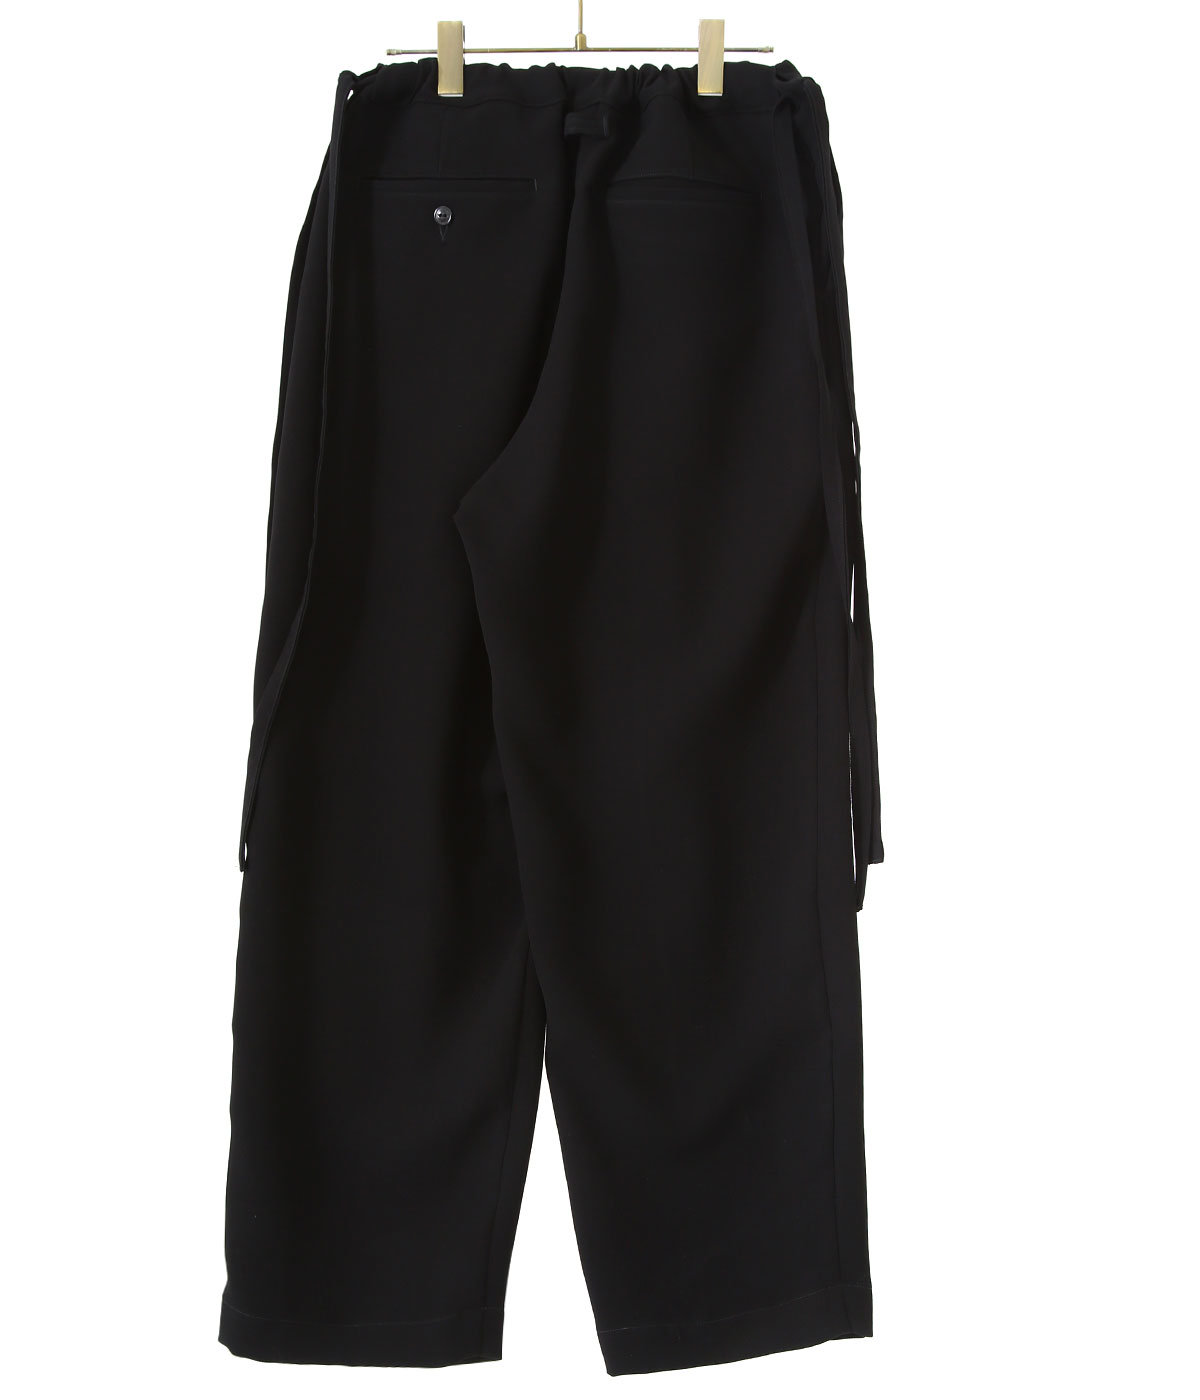 【予約】STRETCH DOUBLE CLOTH STRINGS PANTS